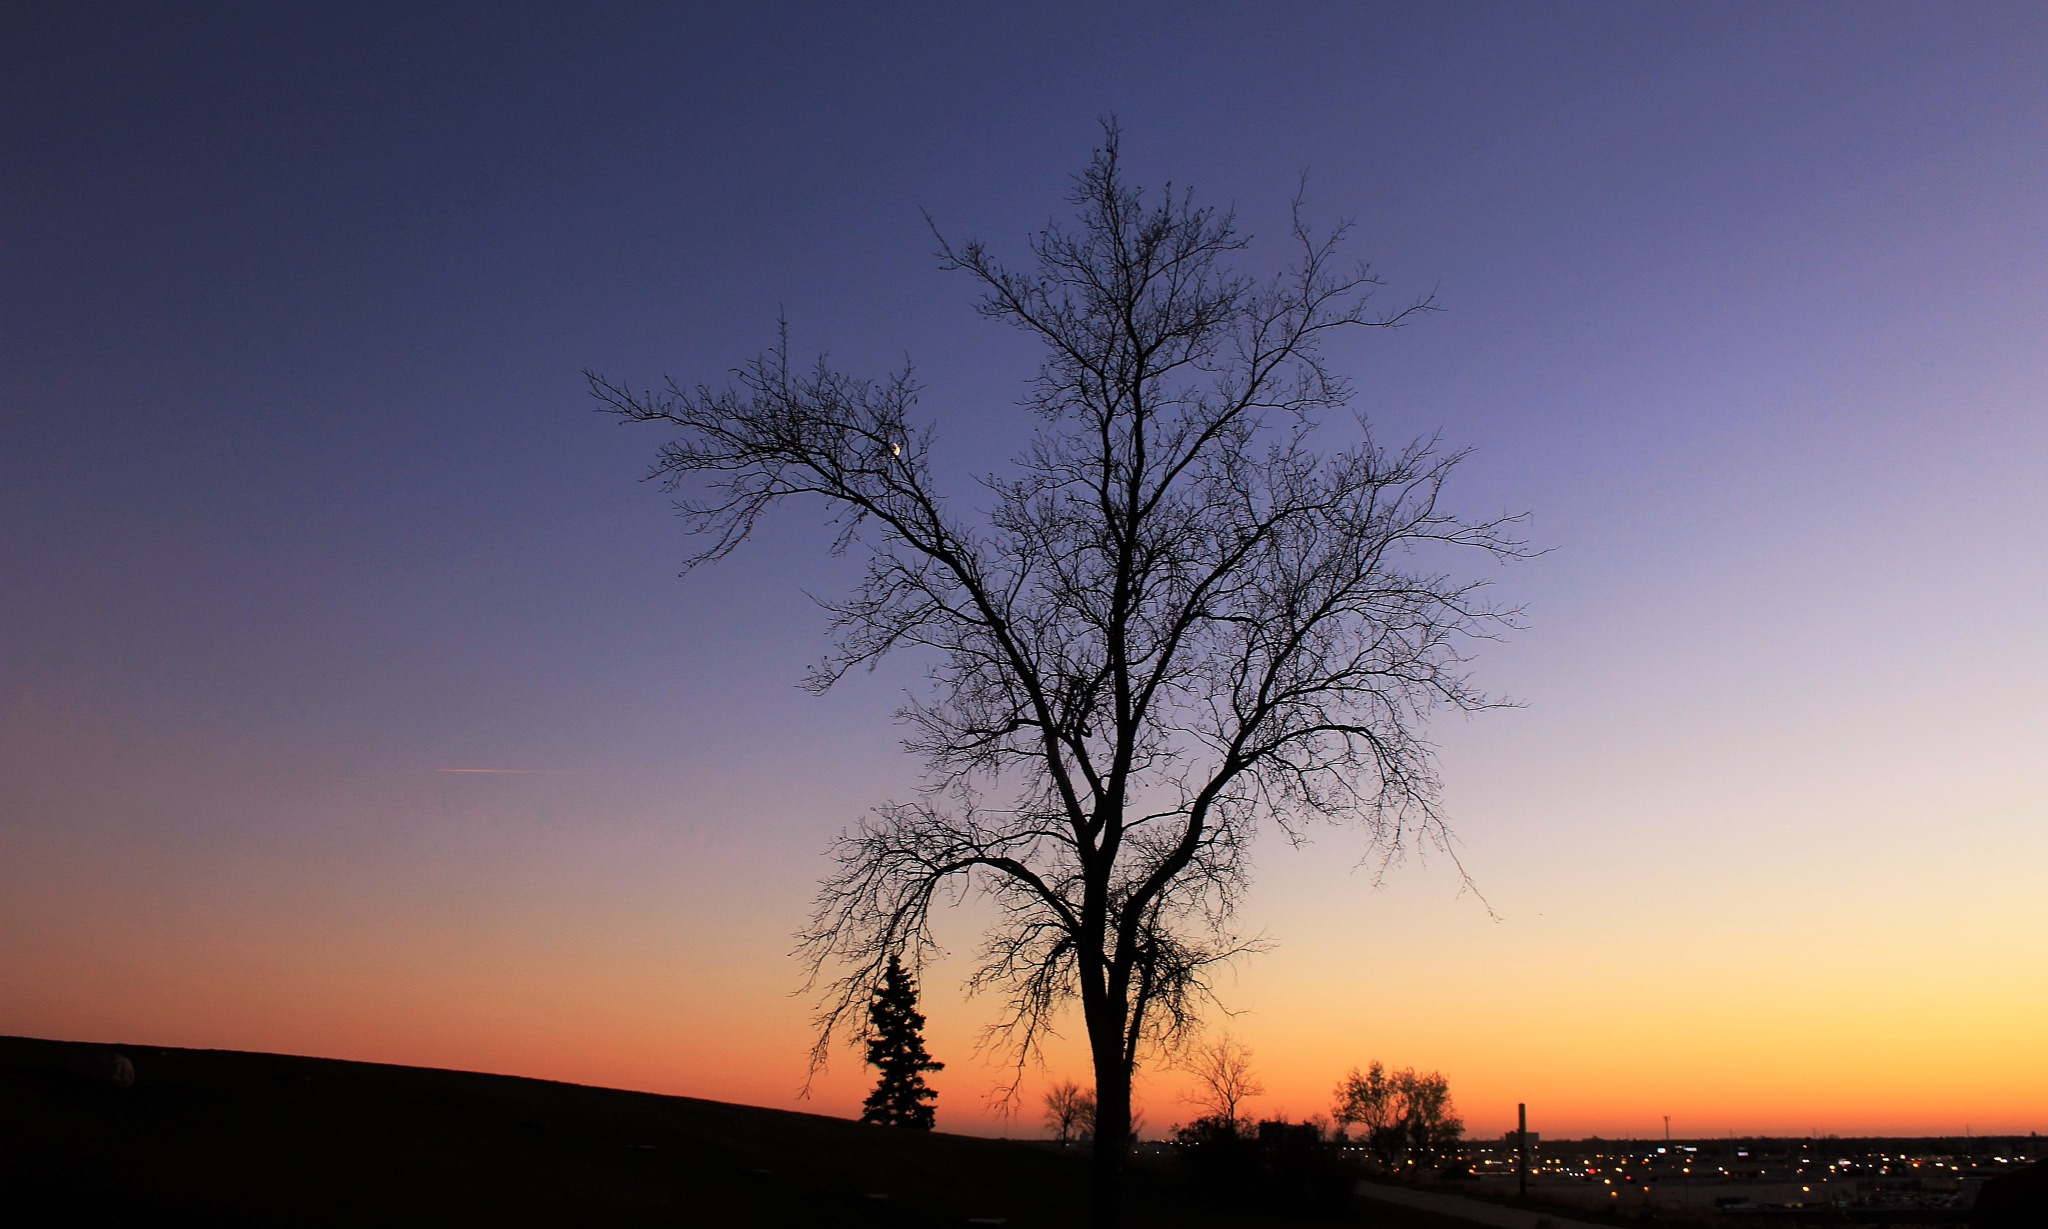 Bare Tree Against the Sky by David Imrie